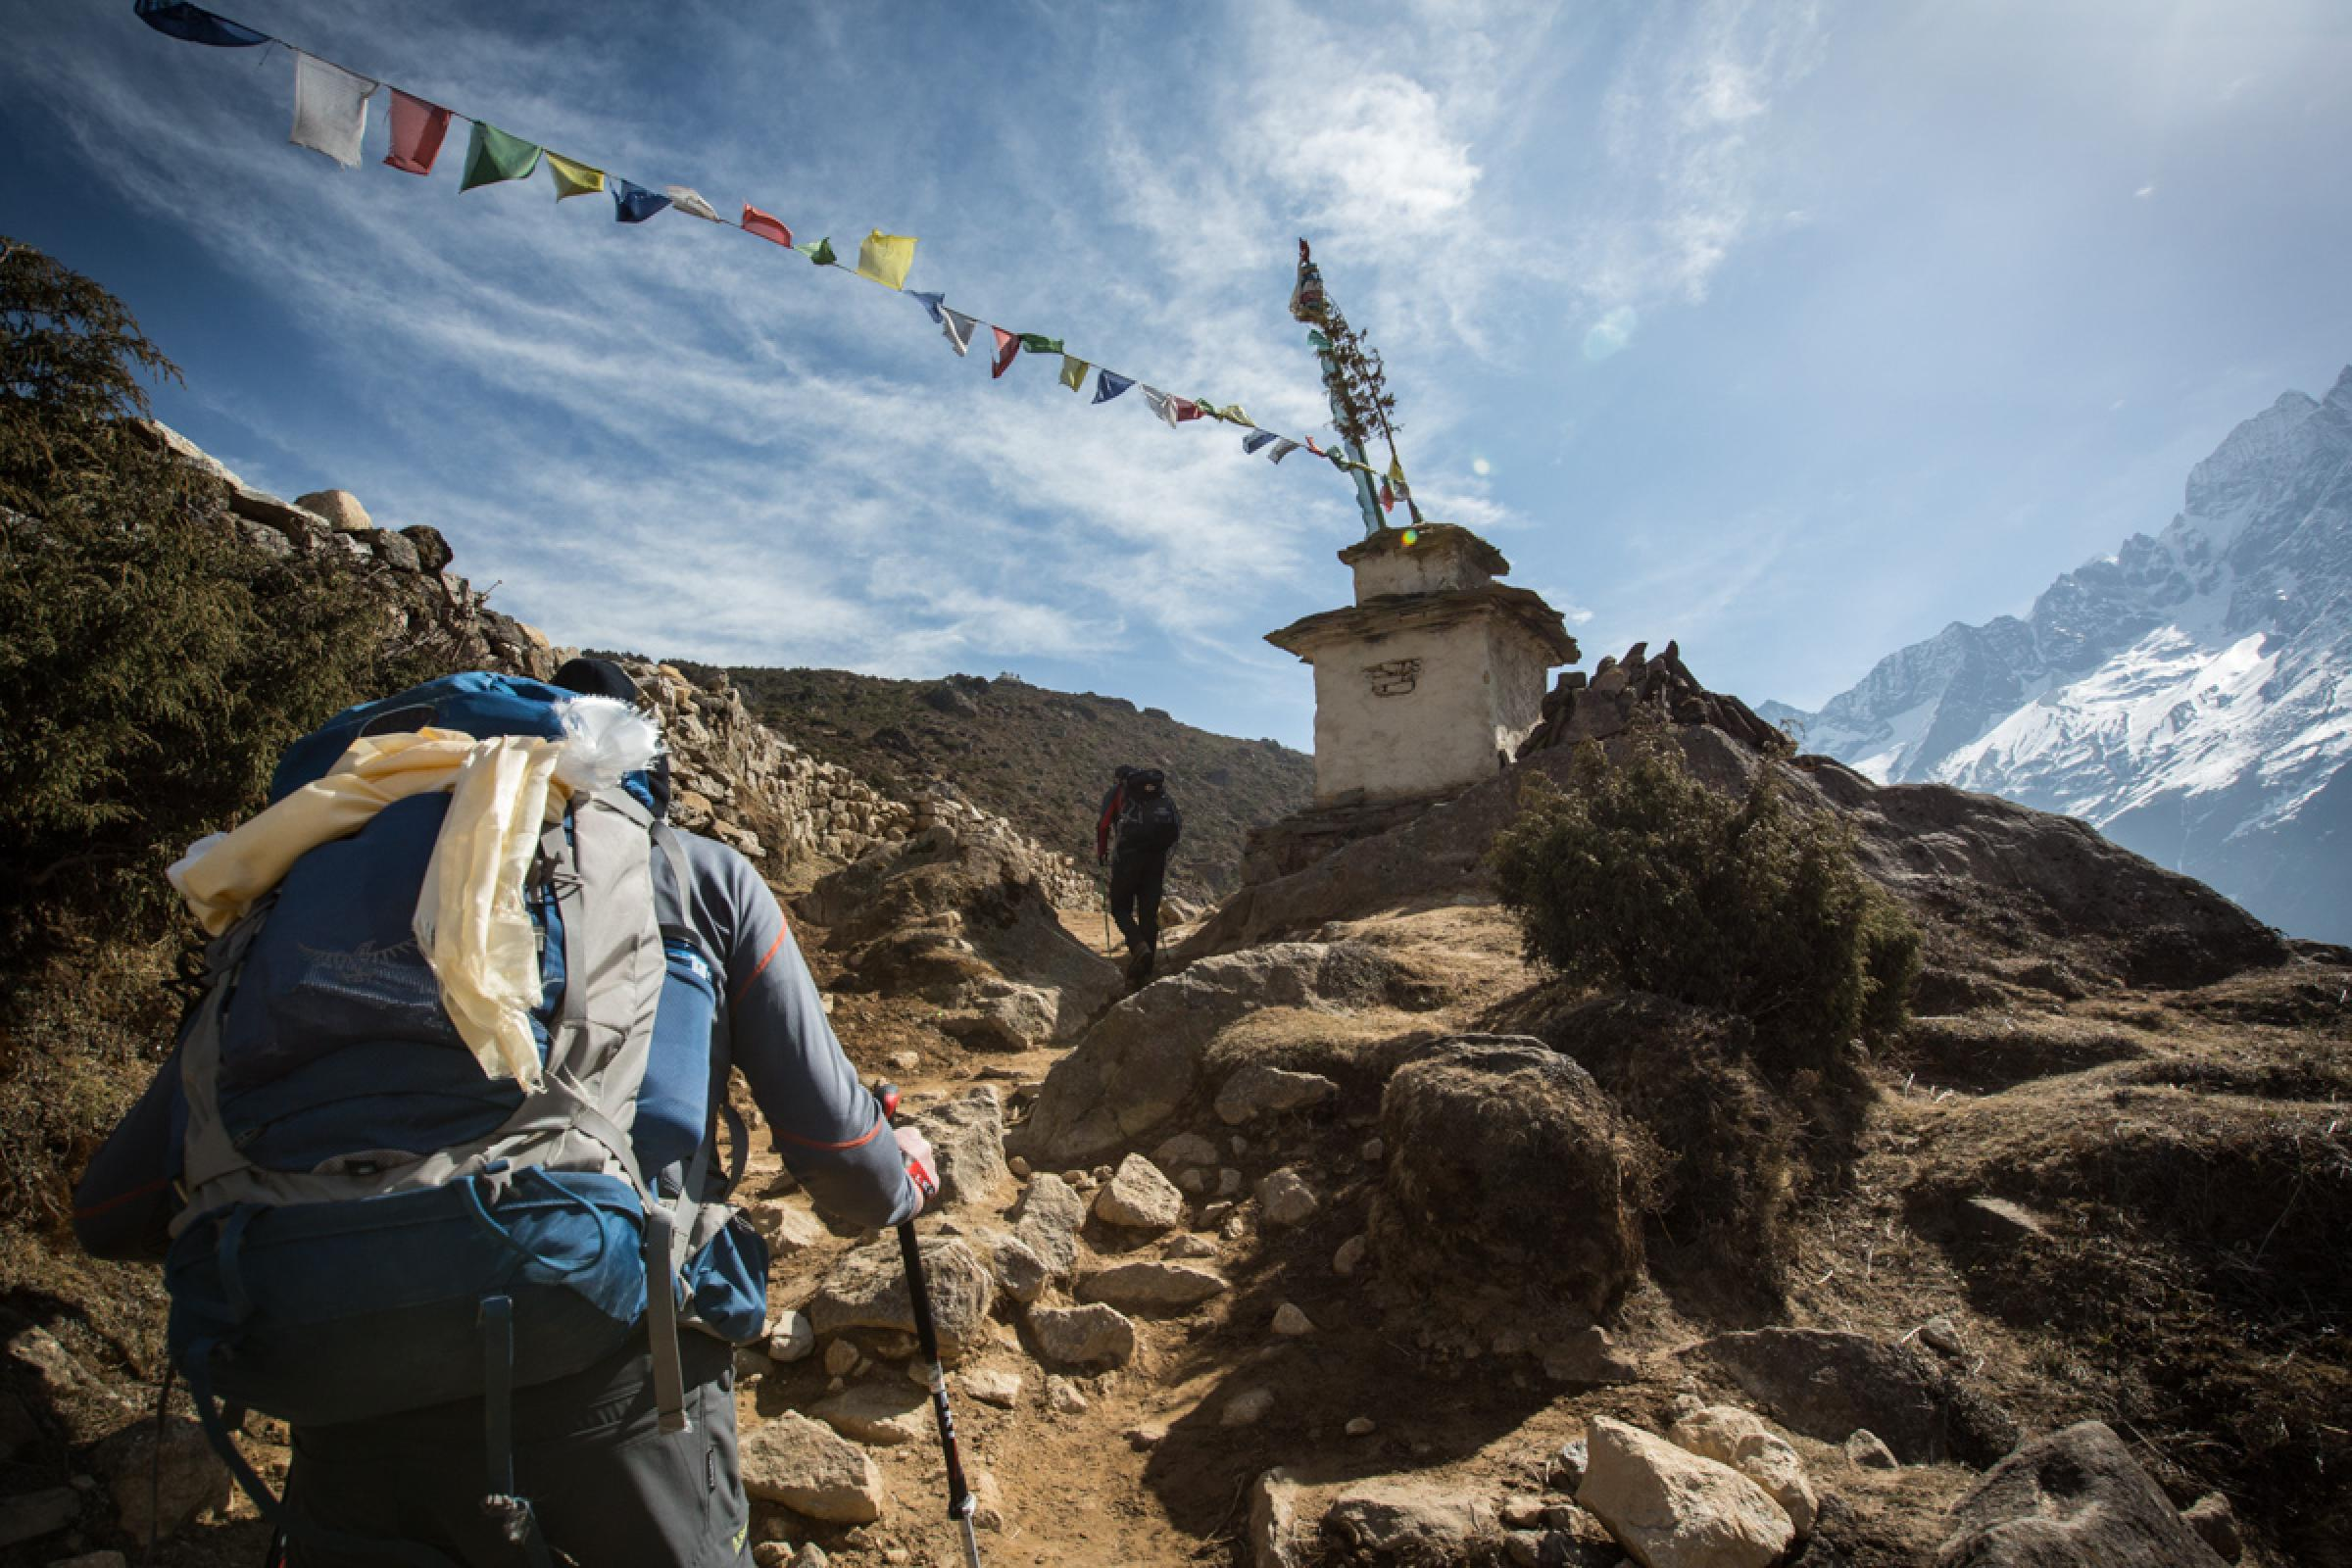 Trek to Kunde (12,470 ft/3,800m) approx. 3 hours